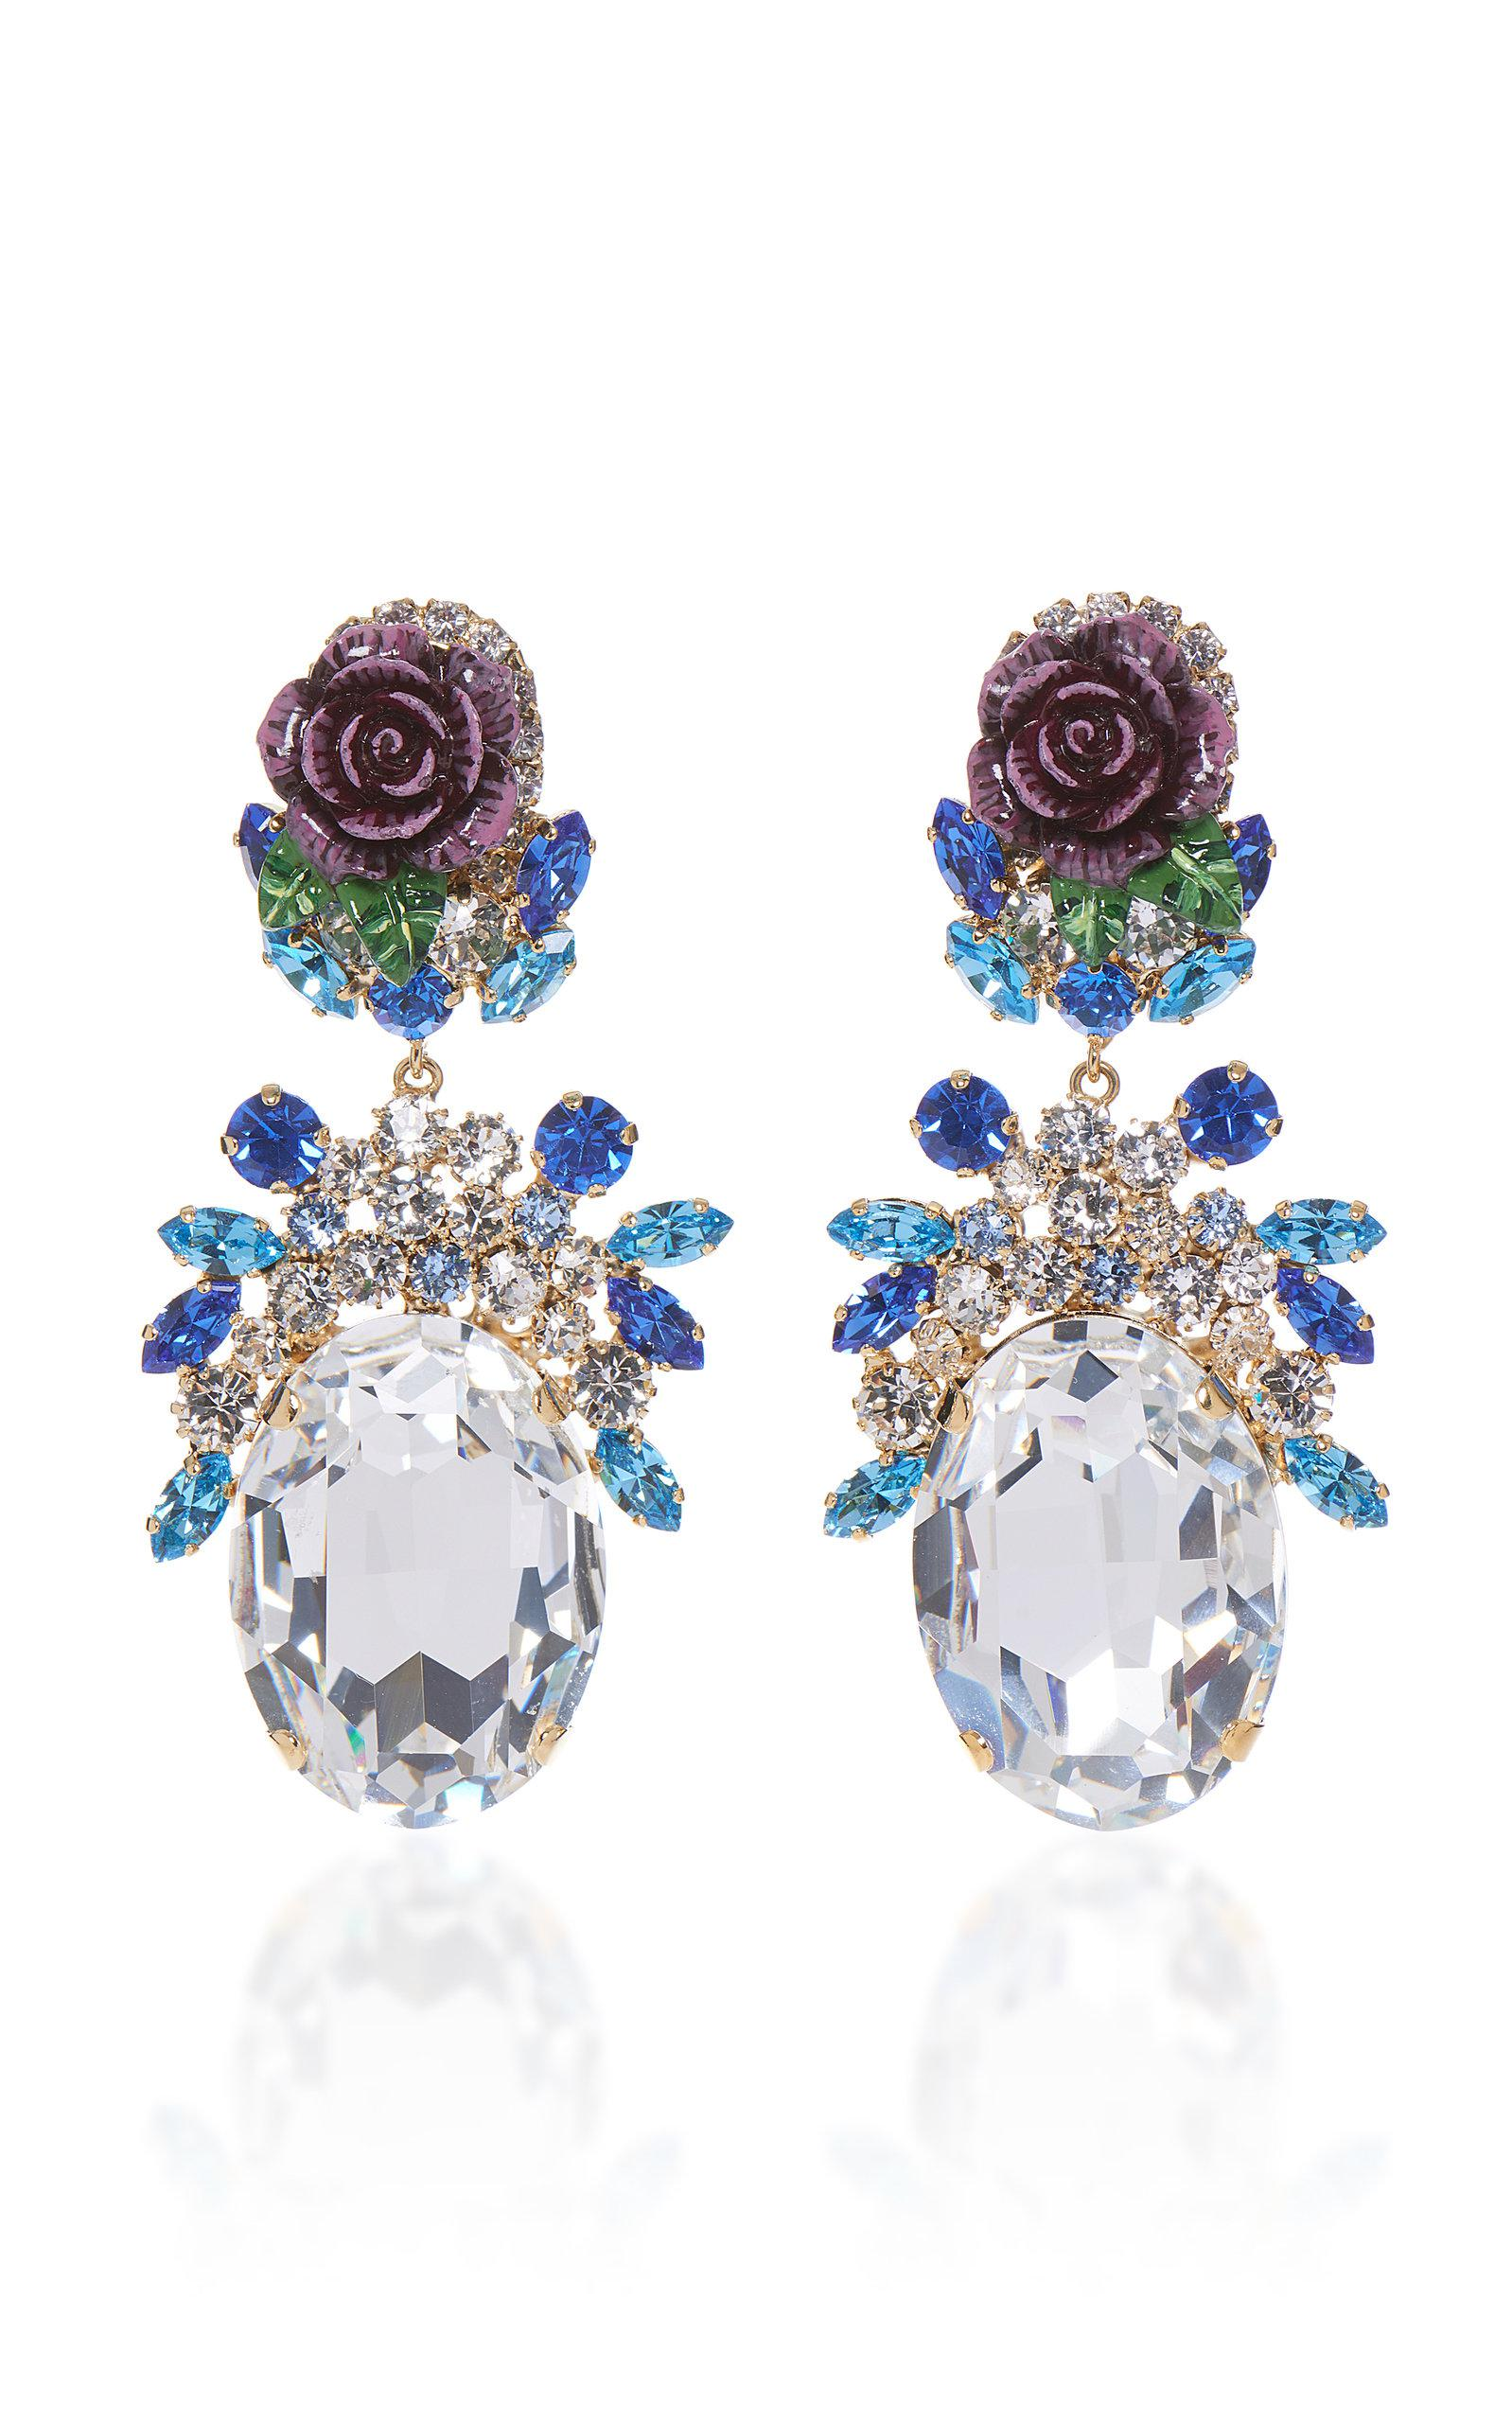 Rosetto Cameo Gold-Tone Brass and Crystal Earrings Dolce & Gabbana gLwbuF2v